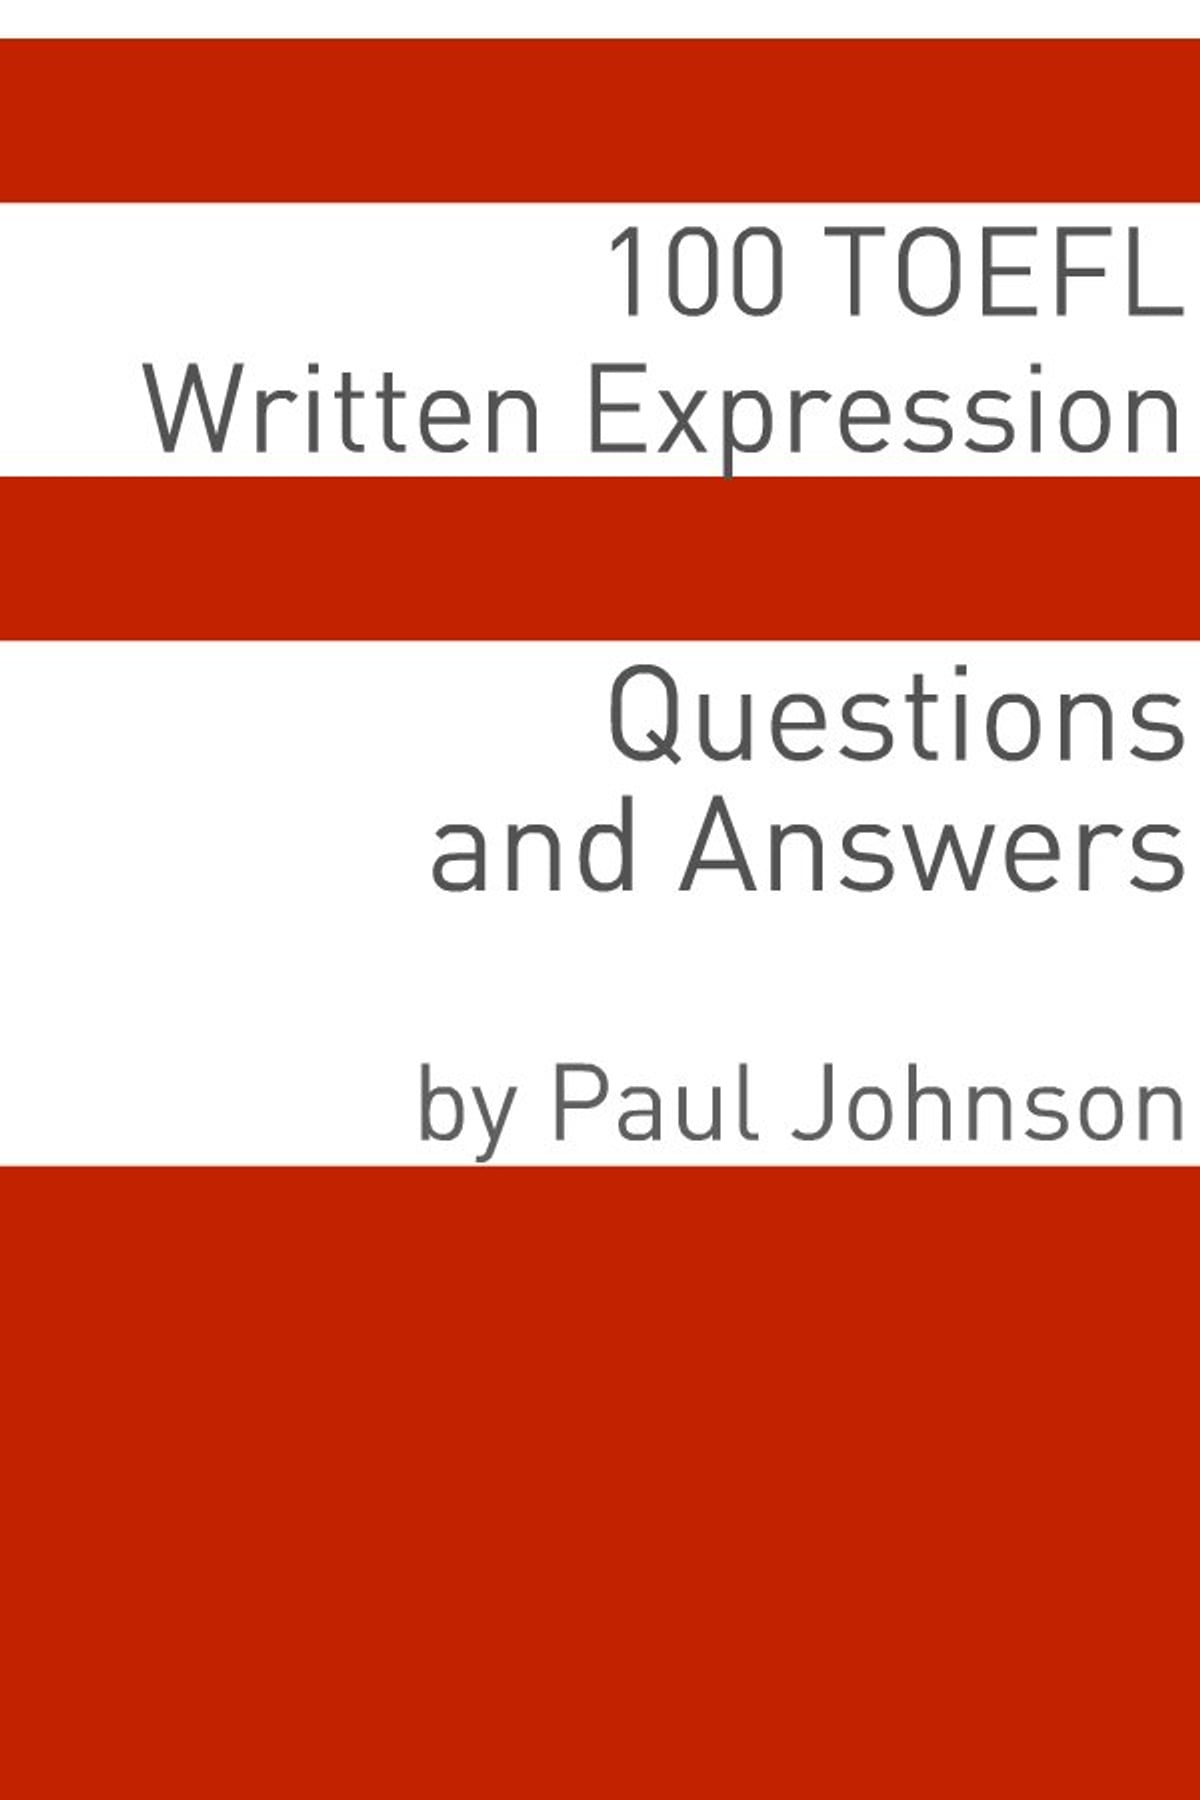 100 TOEFL Written Expression Questions and Answers eBook by Minute Help -  9781610427630 | Rakuten Kobo